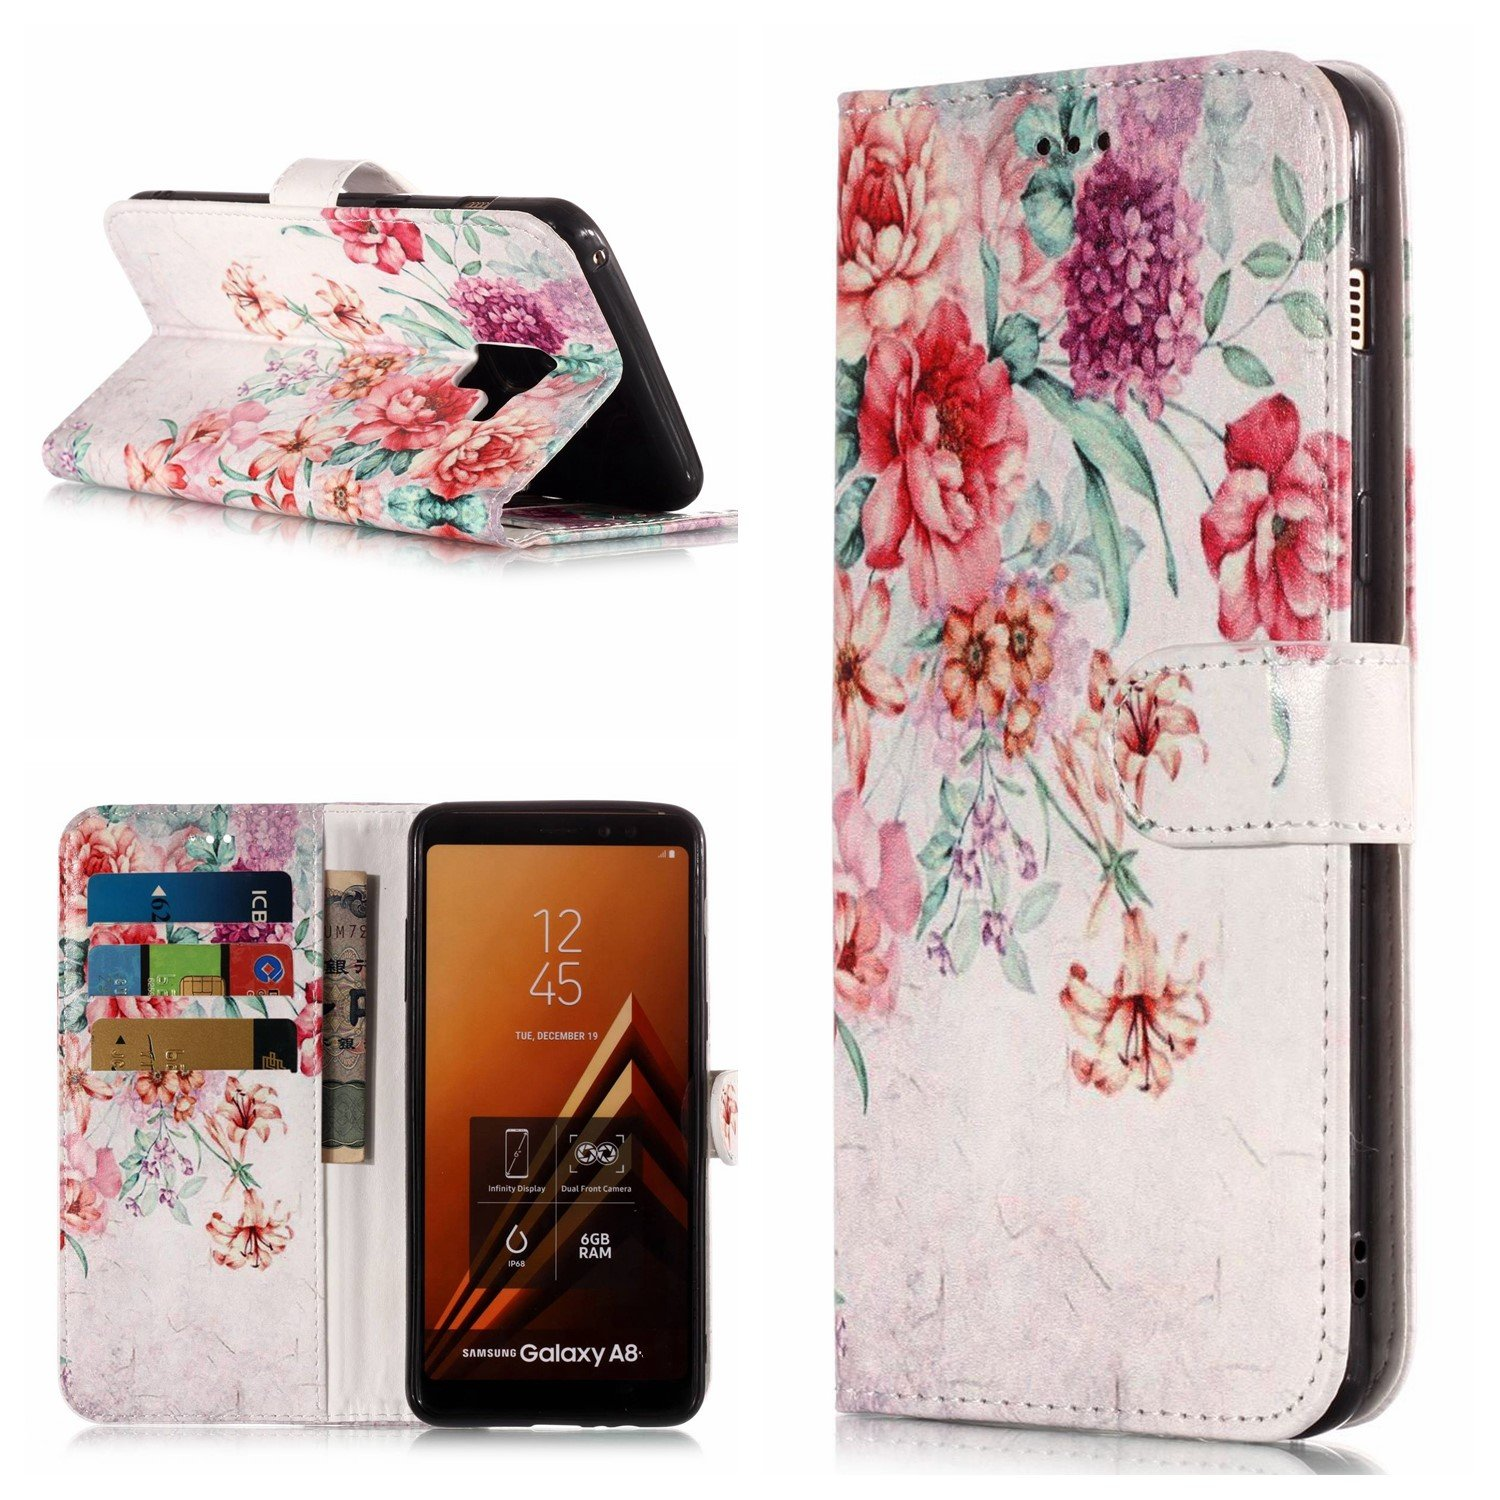 Flip Case for Galaxy A8 2018, Wallet Cover for Galaxy A8 2018, Leeook Pretty Elegante Creative Strap Blue Mandala Flower Design Bookstyle Wrist Strap Magnetic Card Slots Pu Leather Soft Inner Stand Function Protective Folding Wallet Case Cover for Samsung